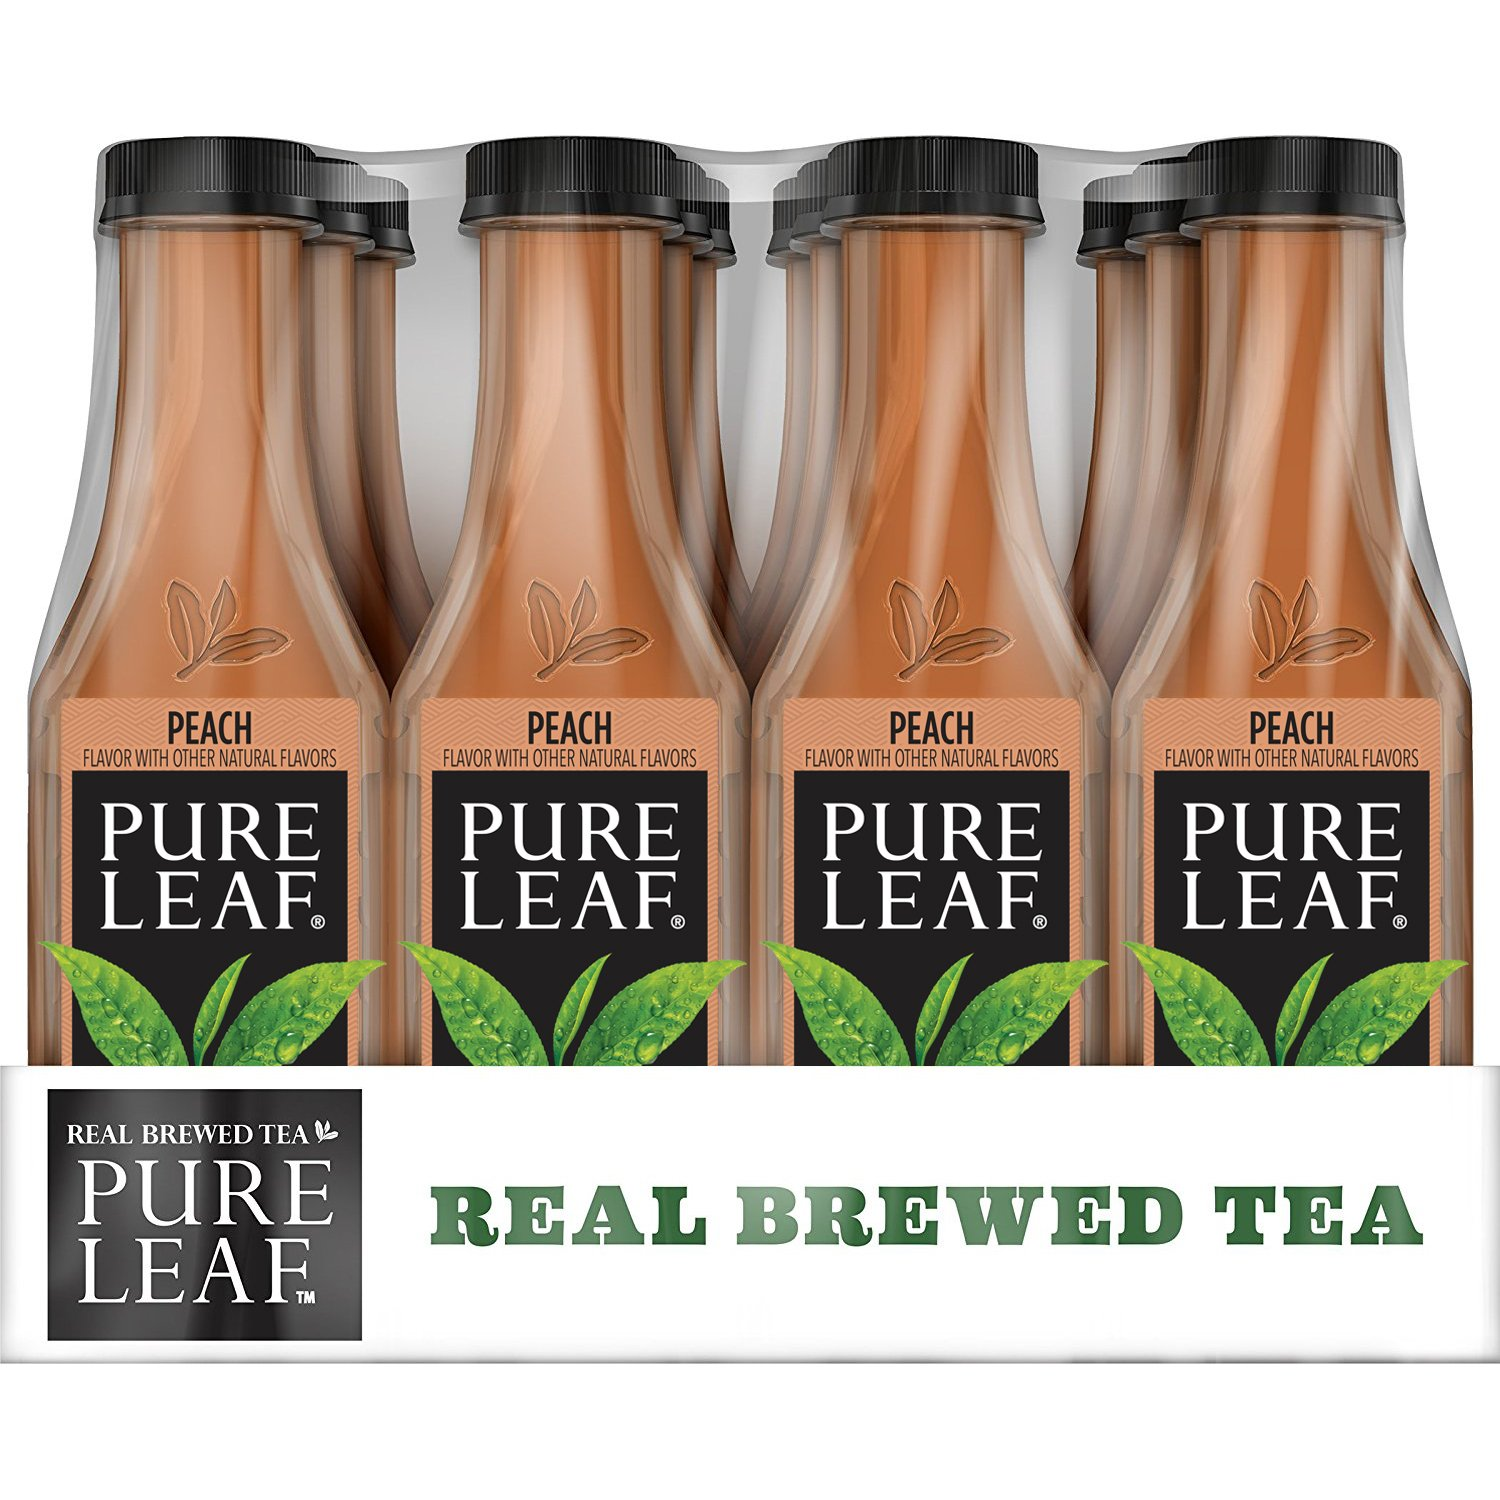 Amazon.com : Lipton Pure Leaf Not Too Sweet Peach Tea, 18